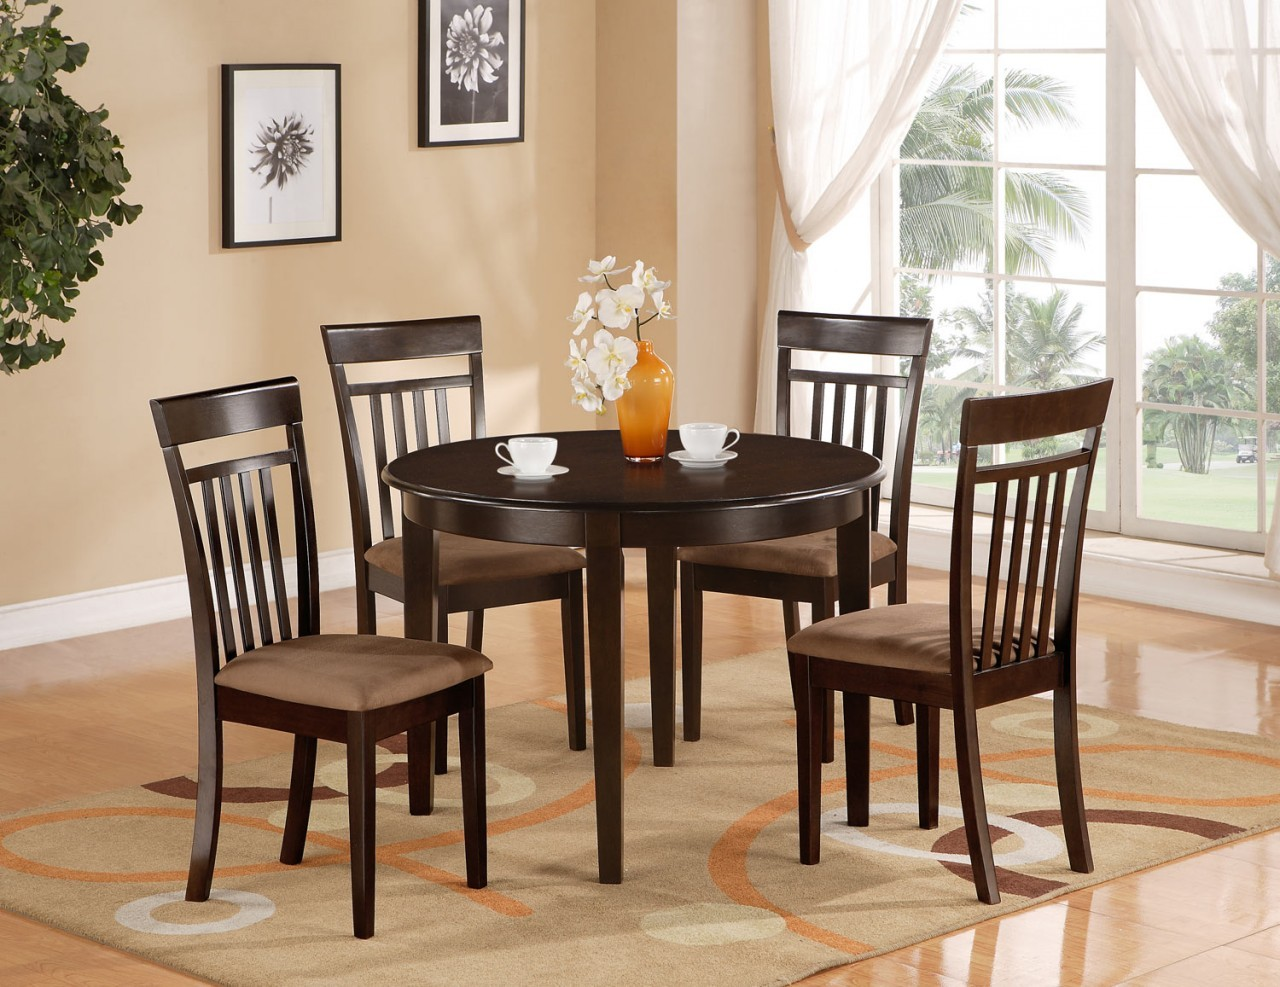 Kitchen dining sets photo 1 kitchen ideas for Kitchen dinette sets